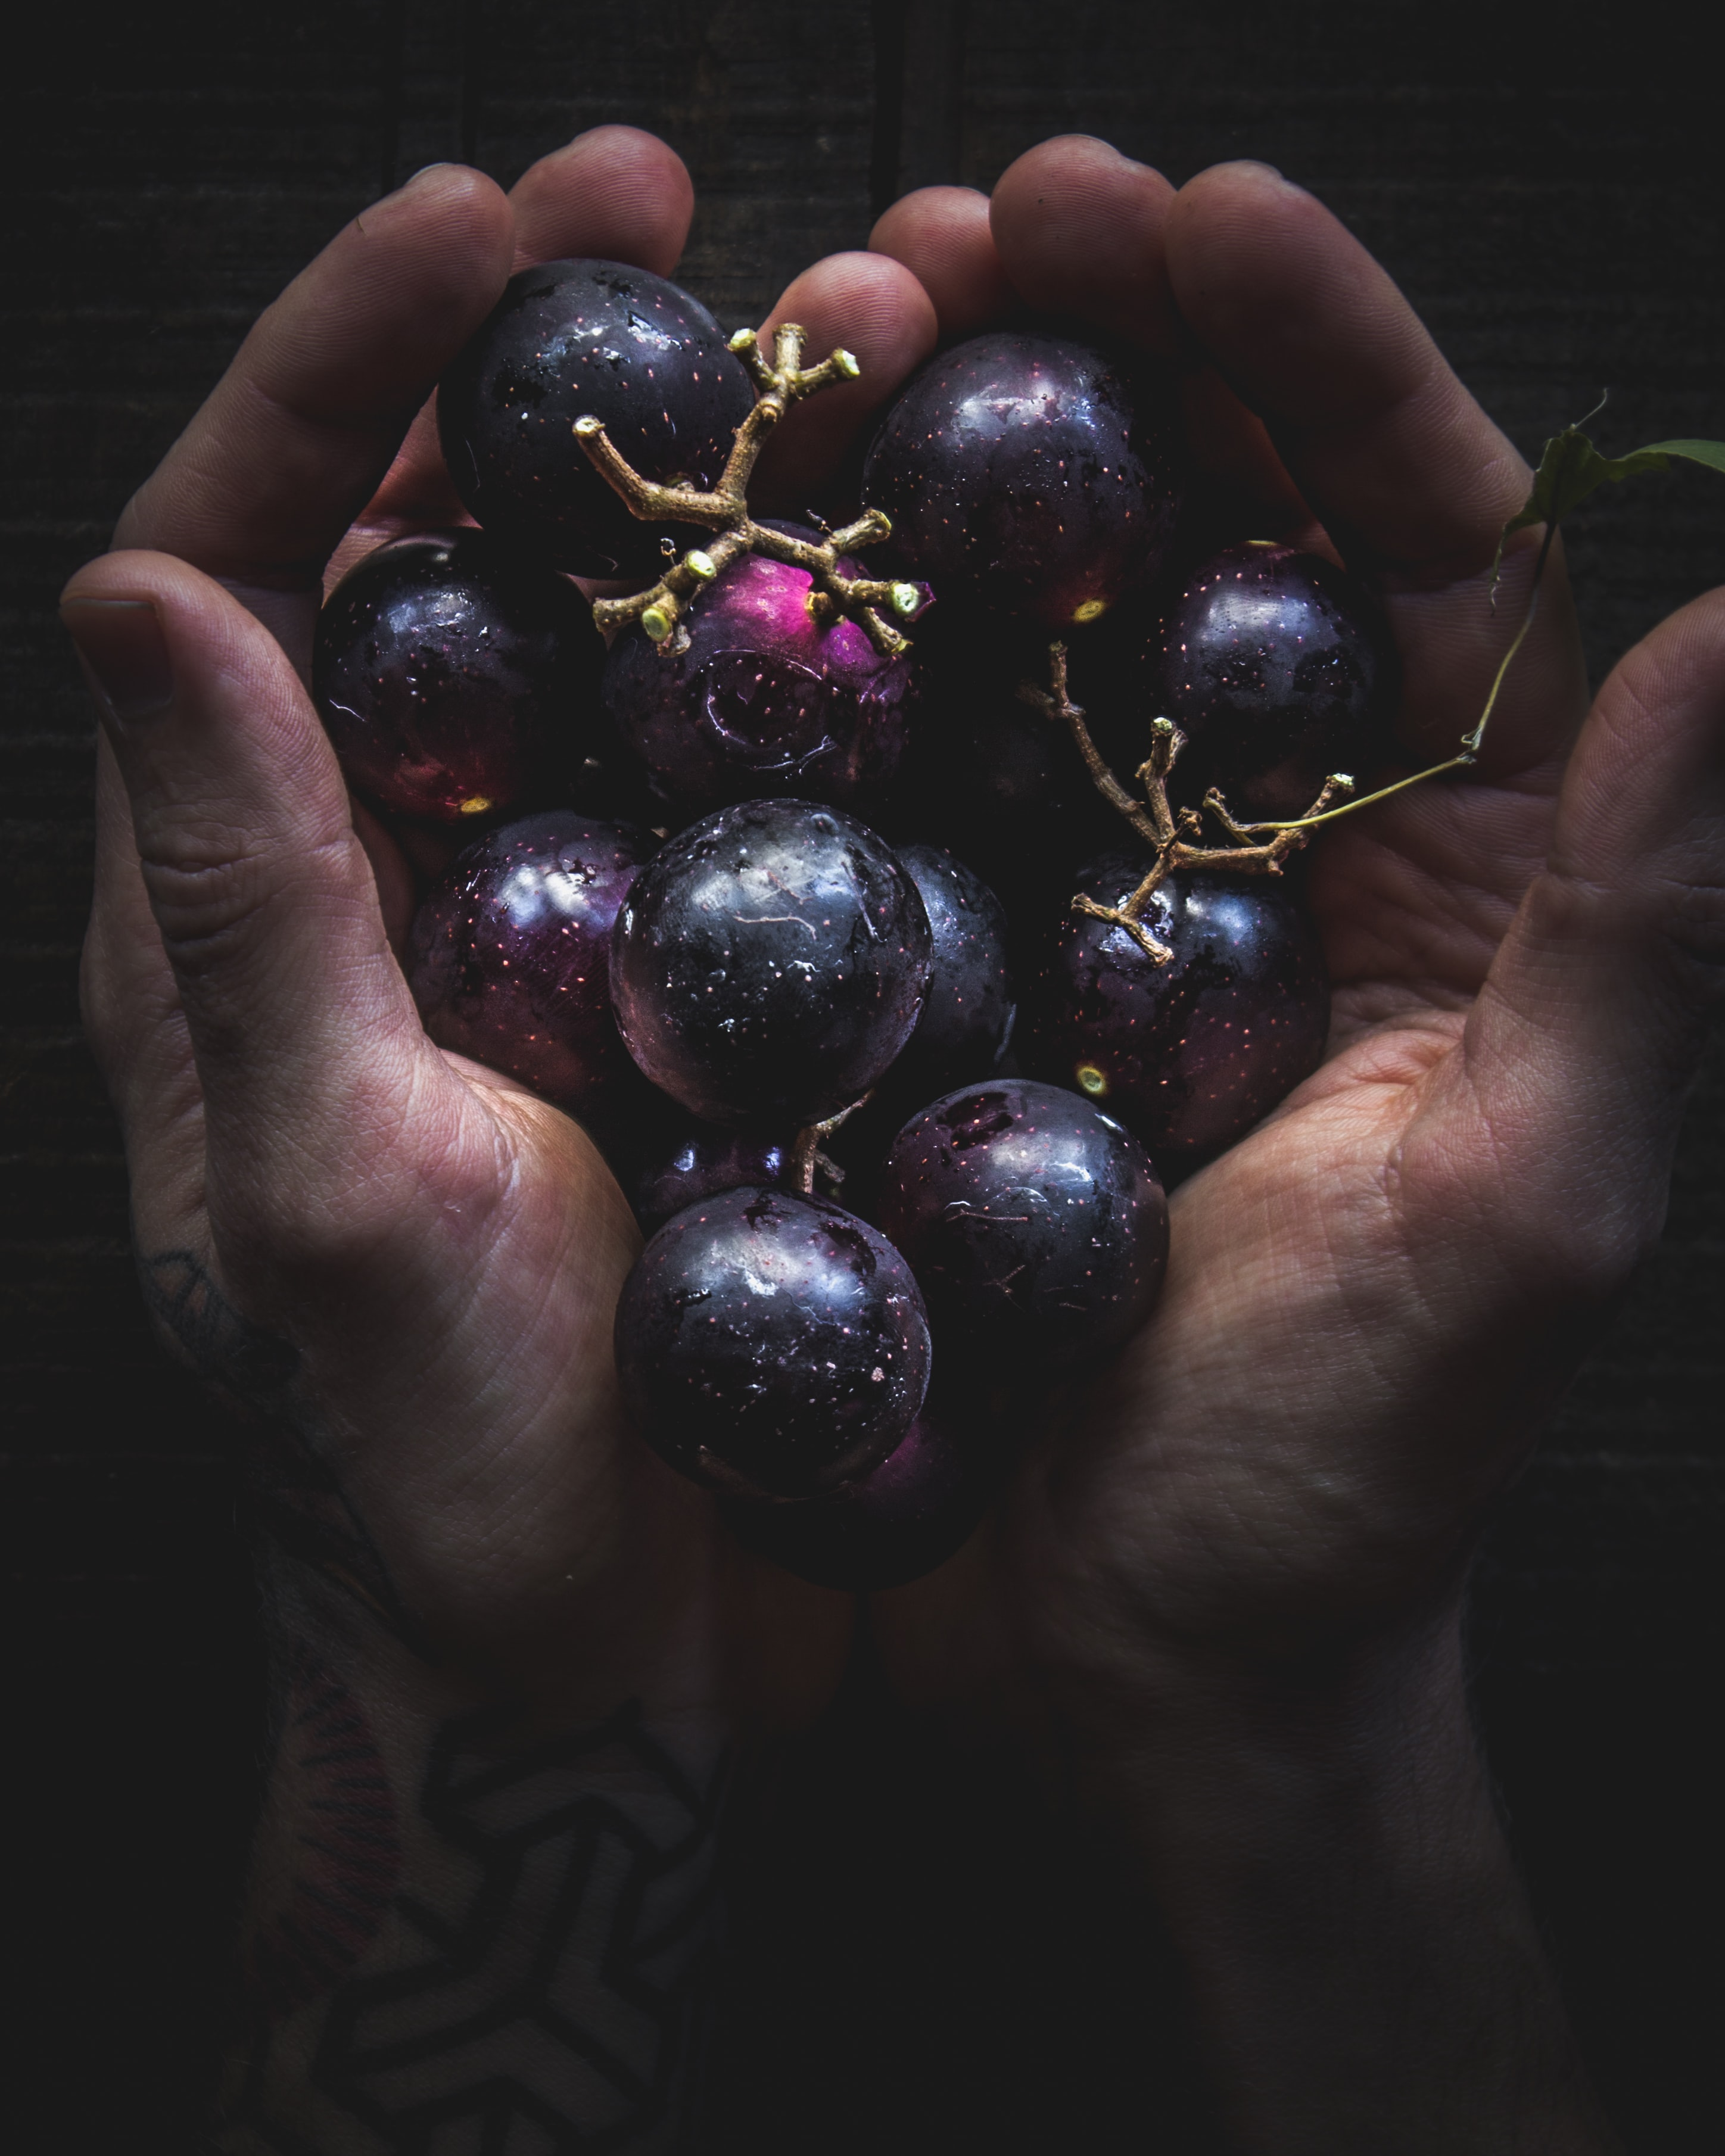 person holding round purple fruits